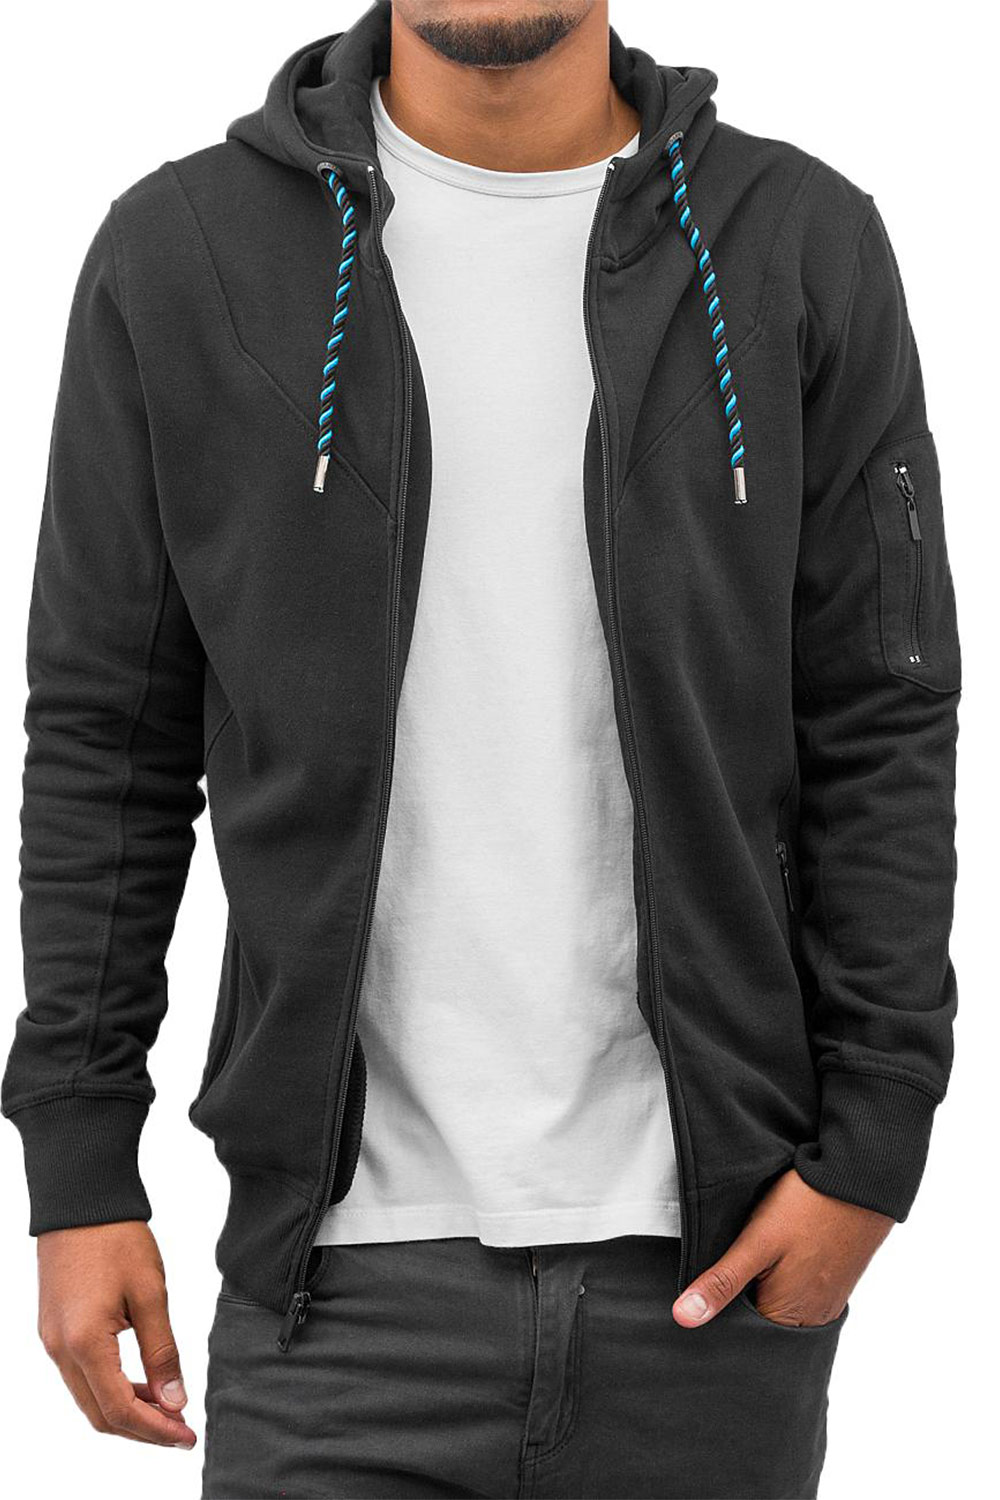 JUST RHYSE World Zip Hoody Black auf oboy.de